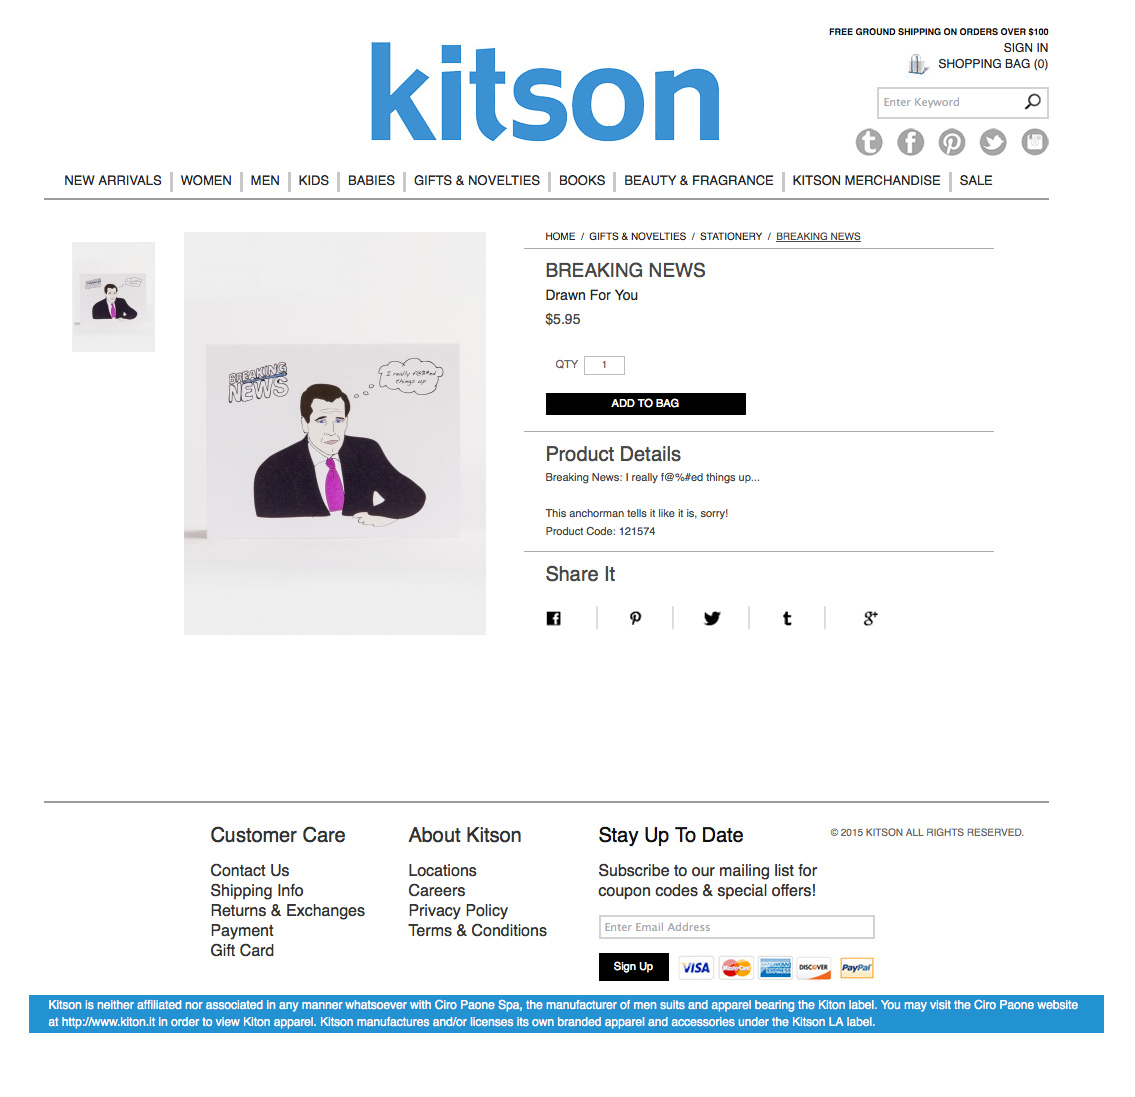 kitson-card-breaking-news.jpg